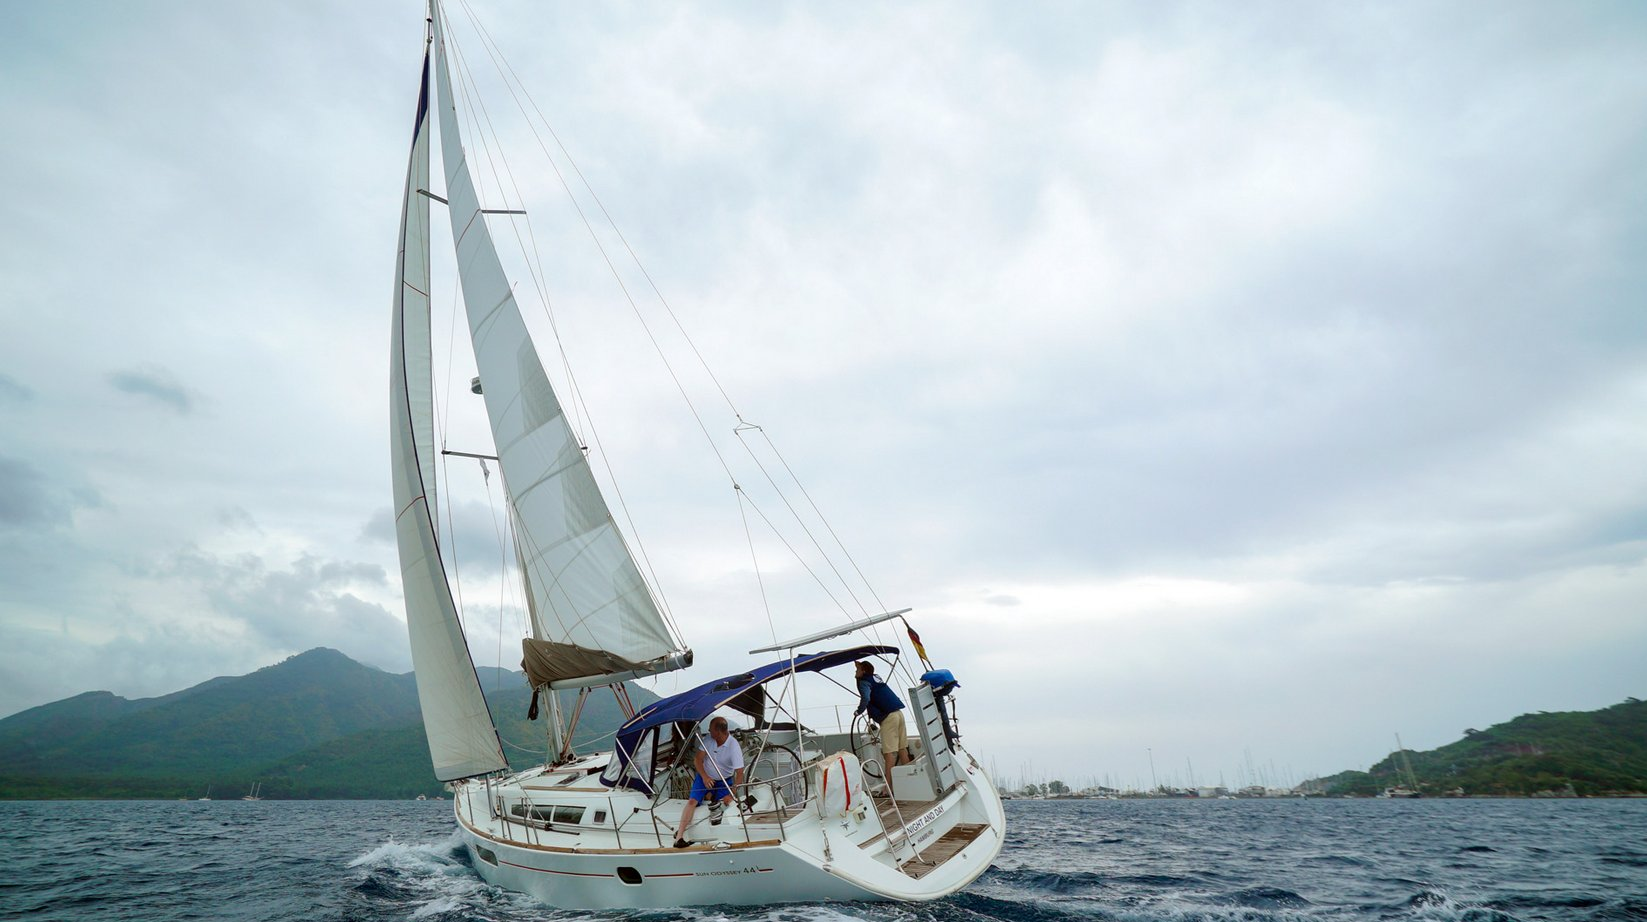 Yacht Charter In Turkey With Gmm Yachting